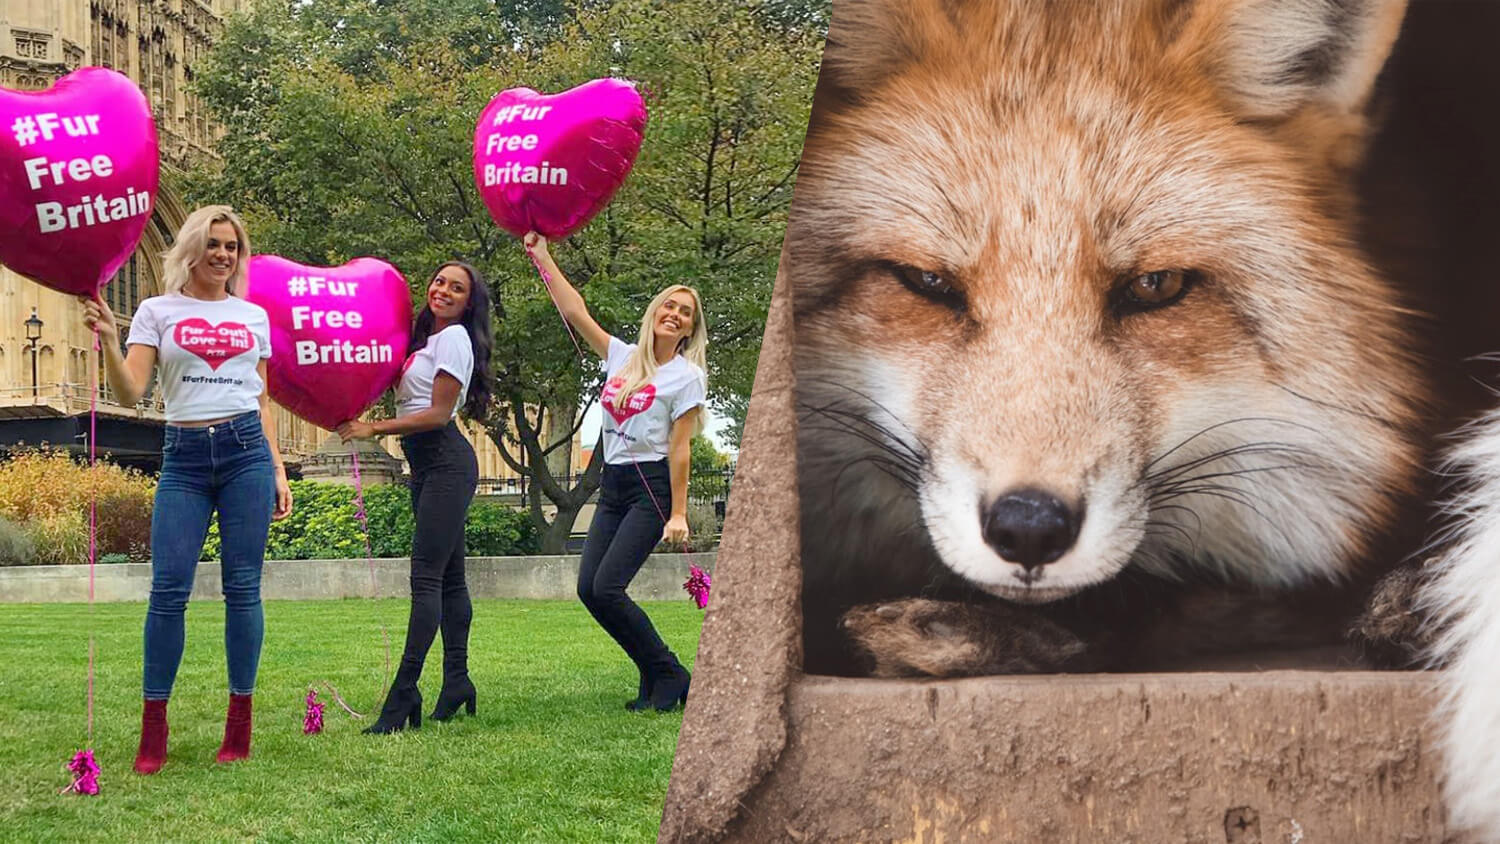 'Love Island' Stars Samira Mighty, Laura Anderson, and Laura Crane Urge Parliament to Go Fur-Free